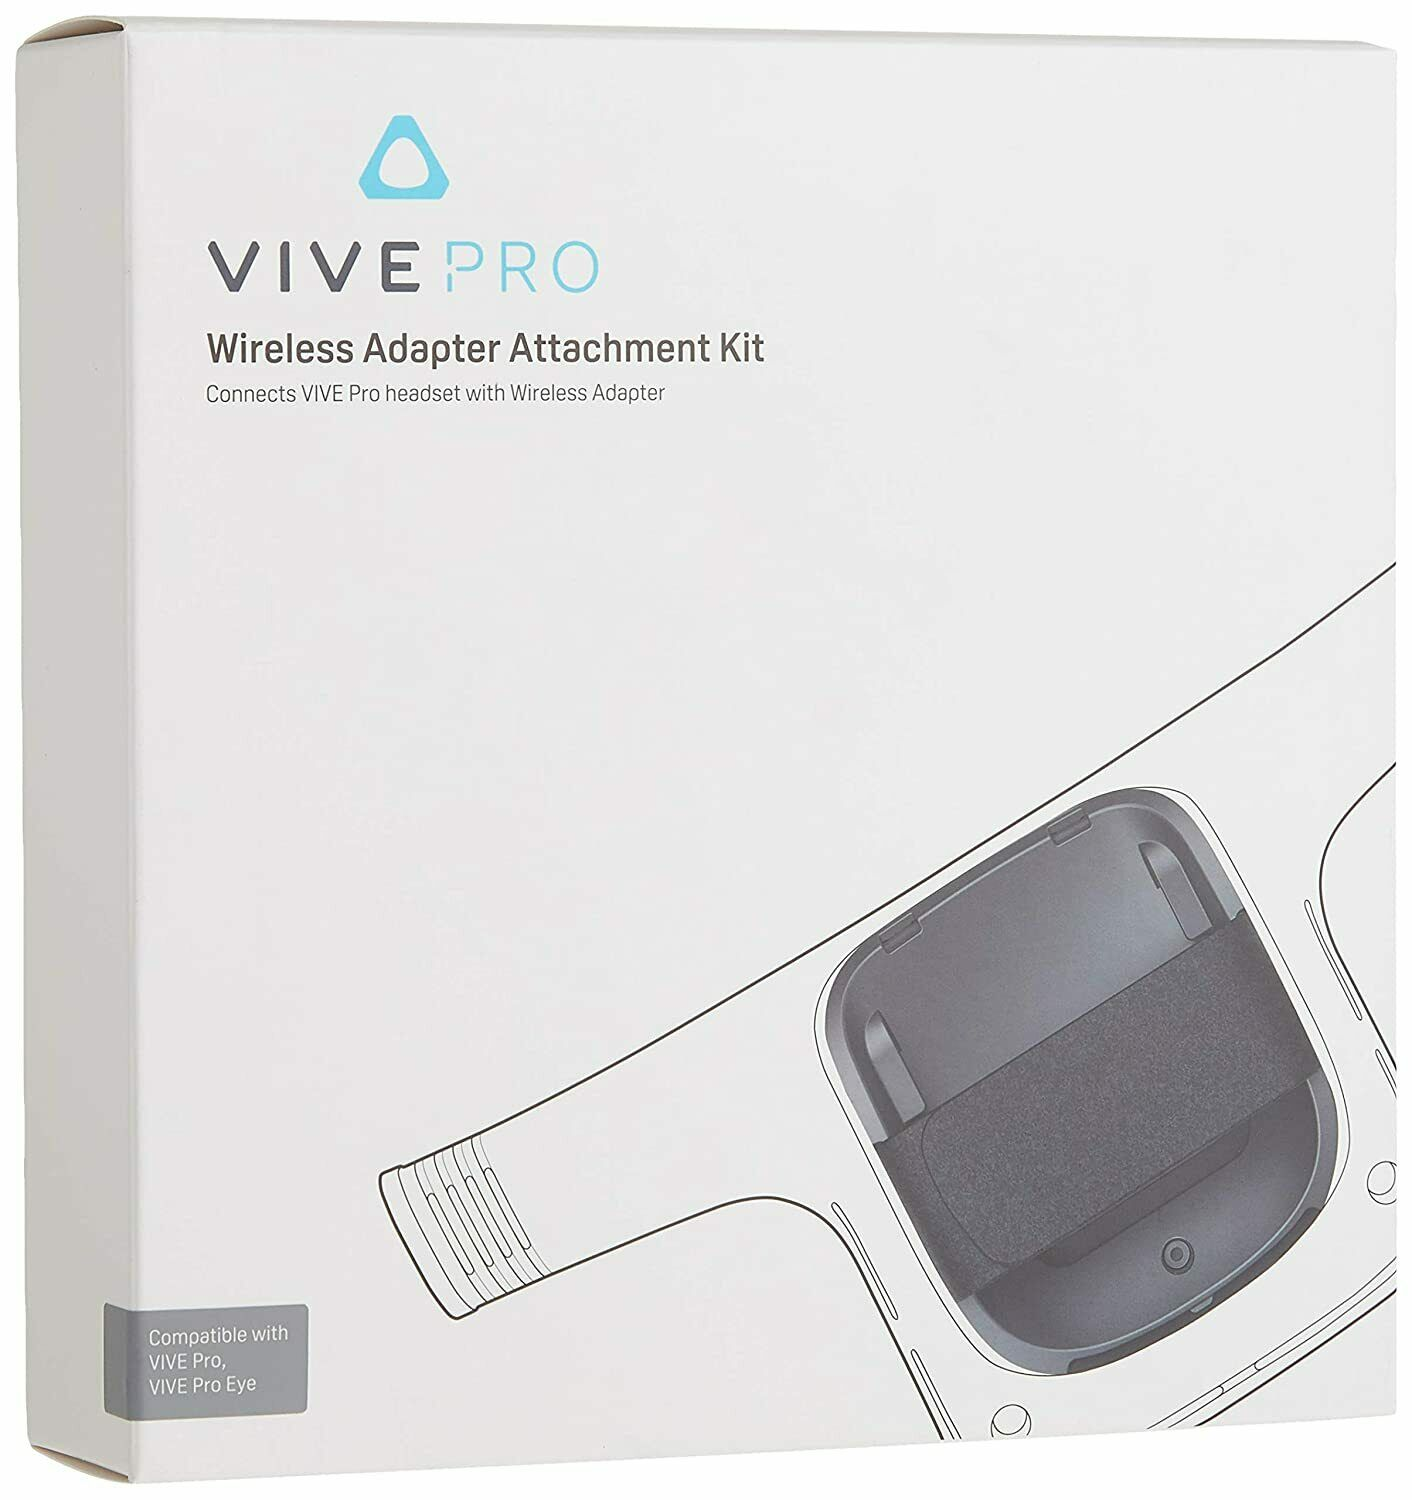 Vive Pro Wireless Adapter Attachment Kit